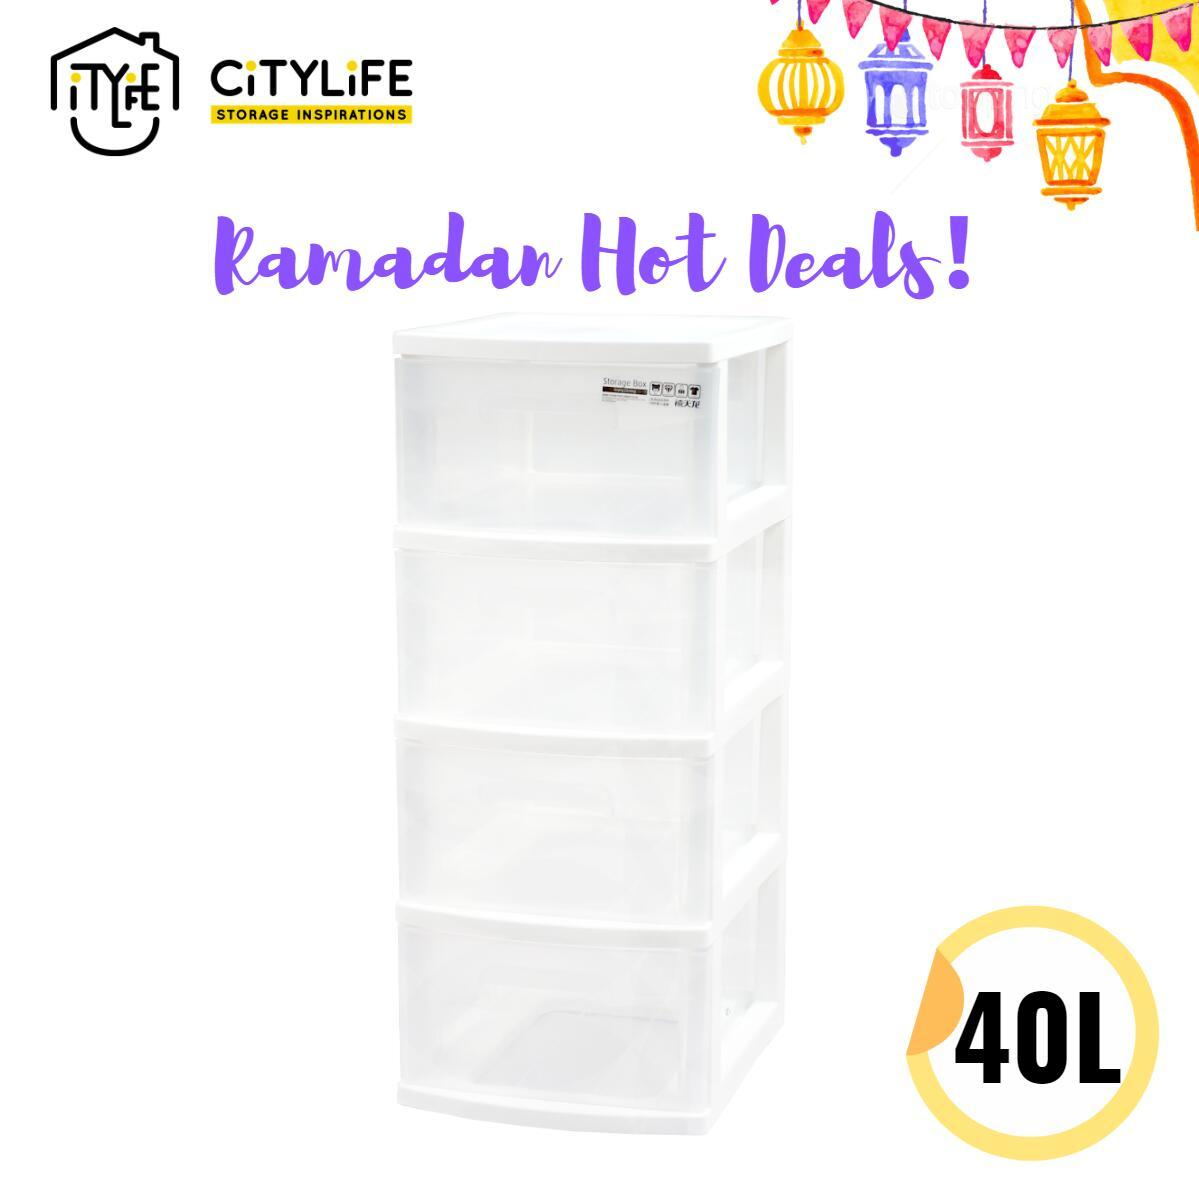 Citylife 40L 4 Tier Compact Cabinet